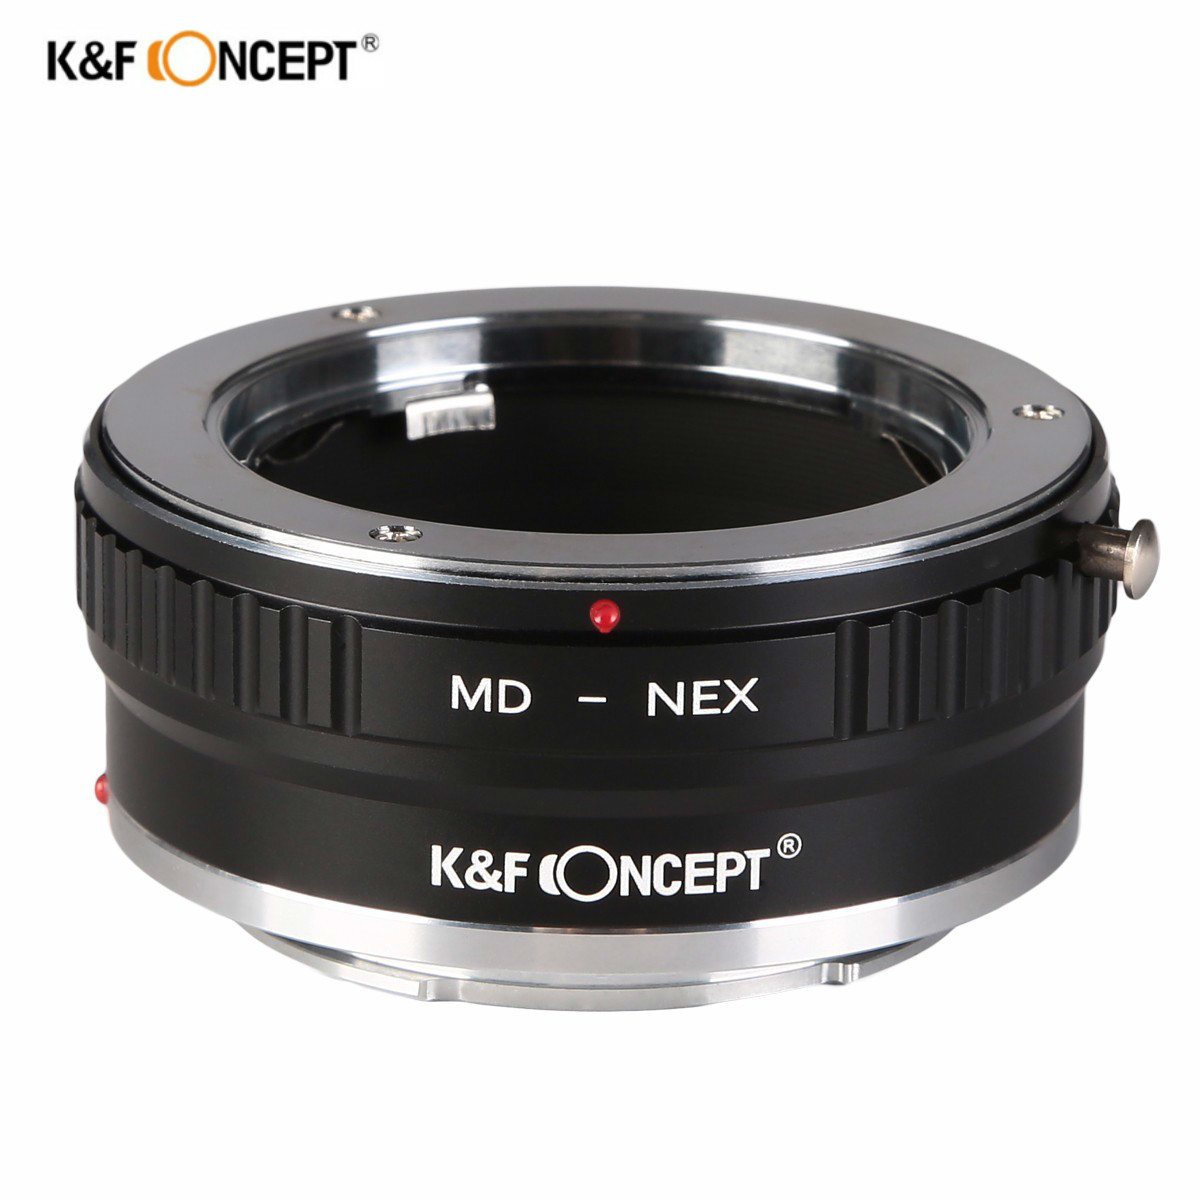 K&F Concept All-copper interface high-precision lens adapter for Minolta MC/MD Mount Lens to Sony NEX NEX-5 7 3 F5 Emount Camera